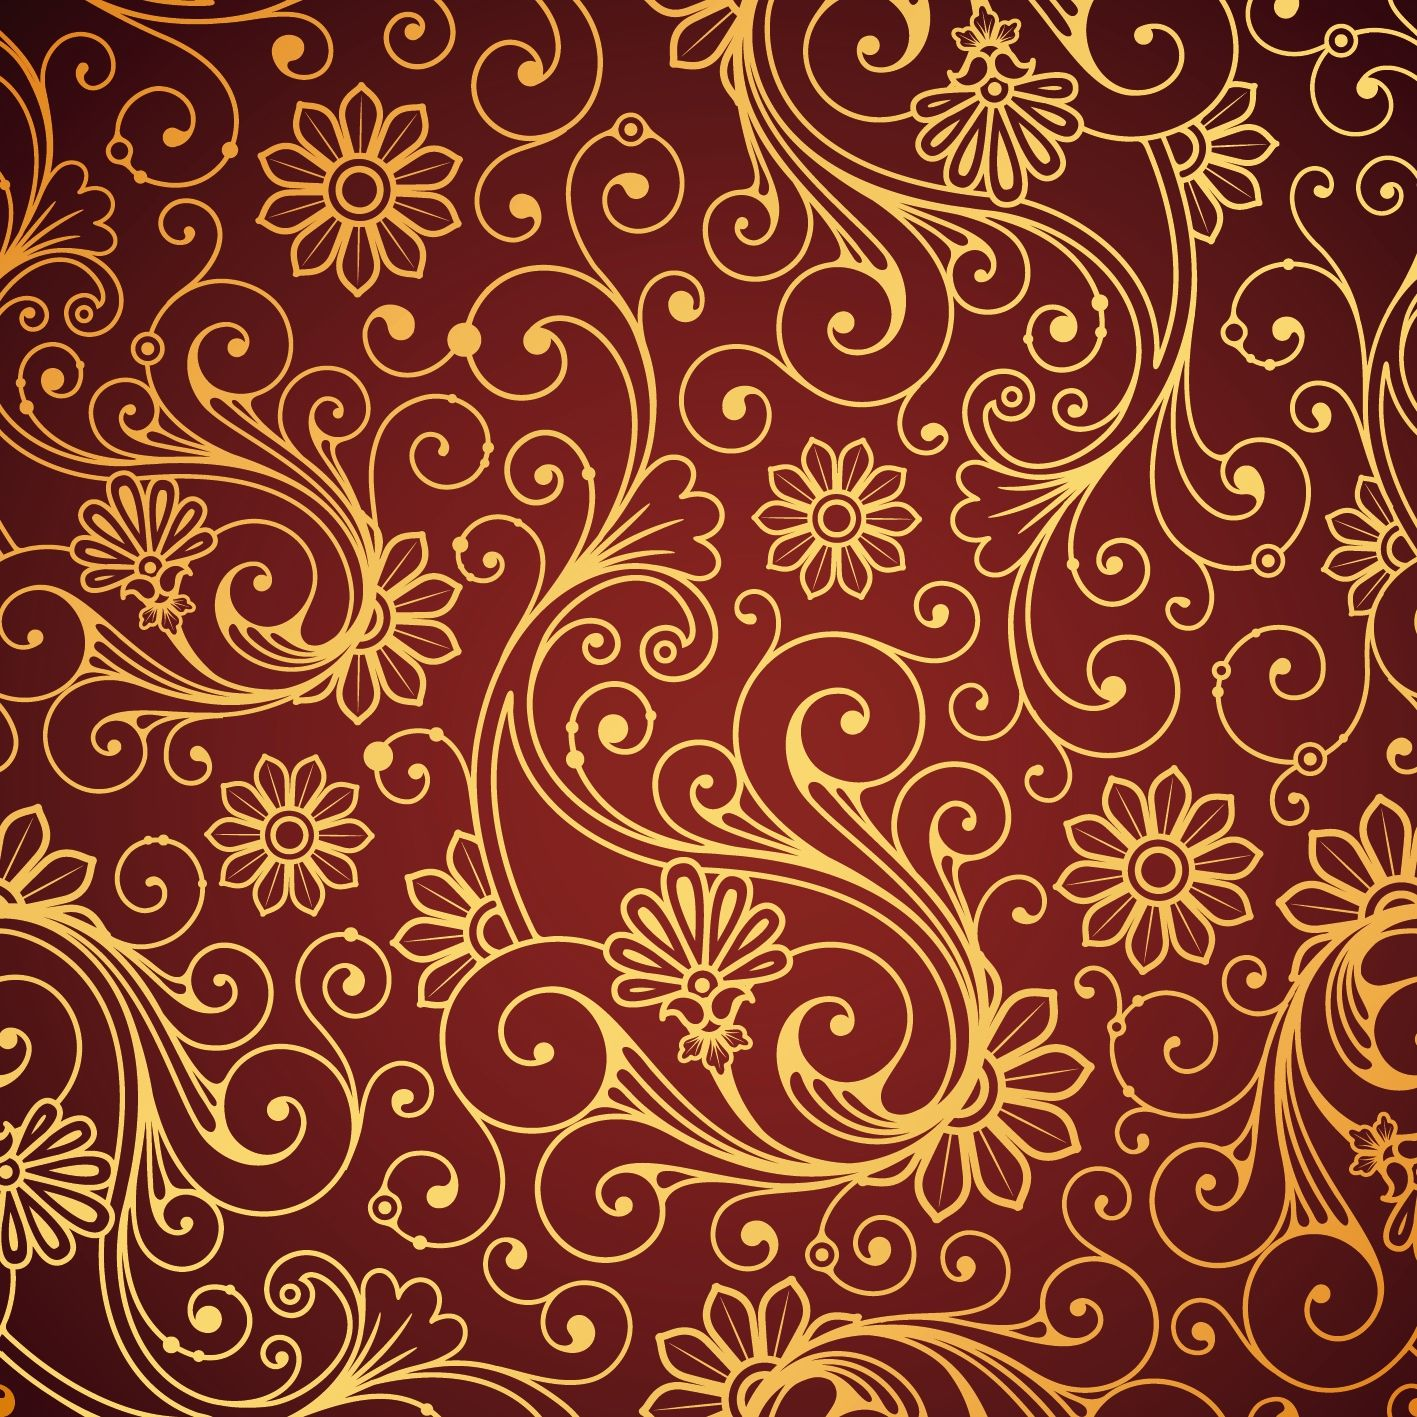 pattern background vector hd Download - Beautiful Background